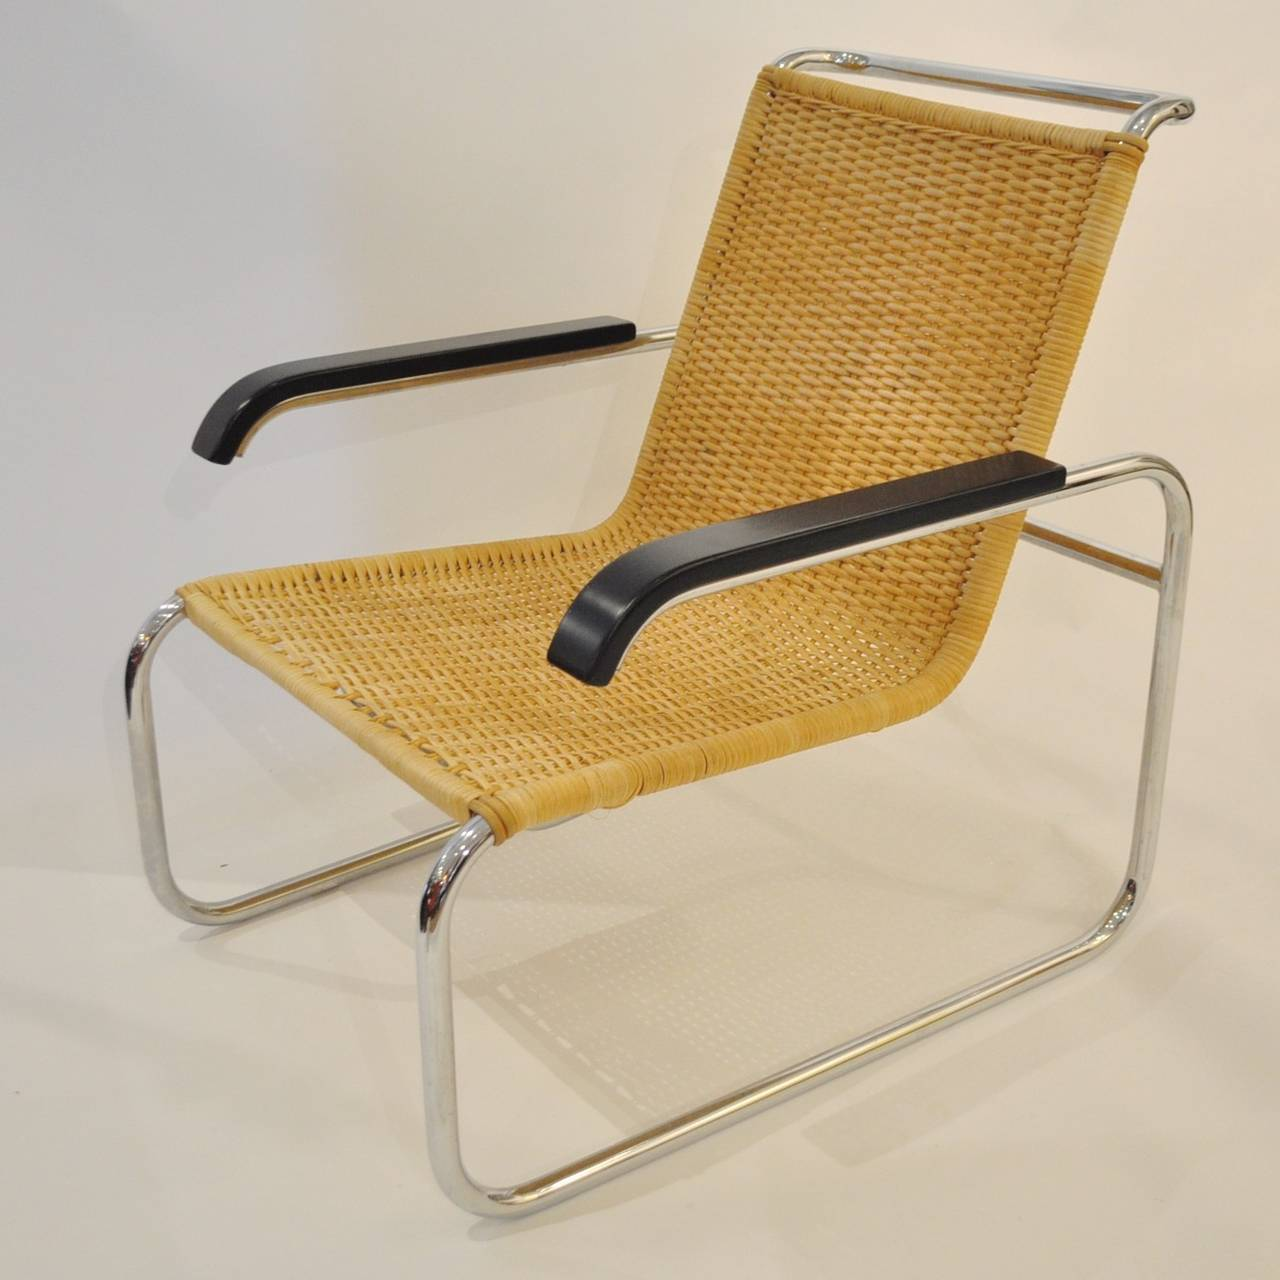 marcel breuer chair recycled plastic adirondack chairs uk pair of b35 lounge at 1stdibs